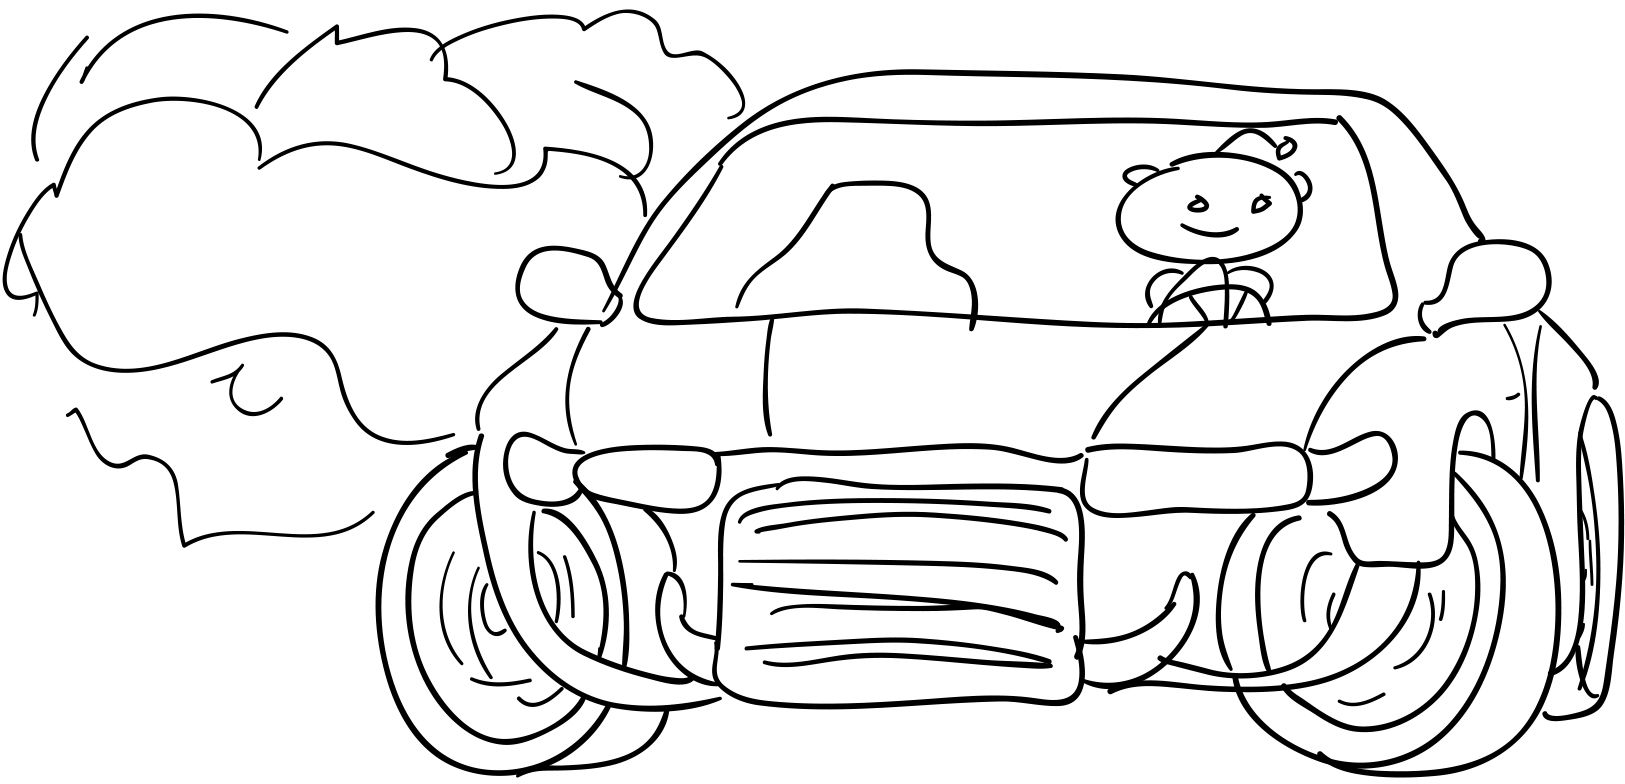 Free Outline Drawing Of Drift Cars Download Free Clip Art